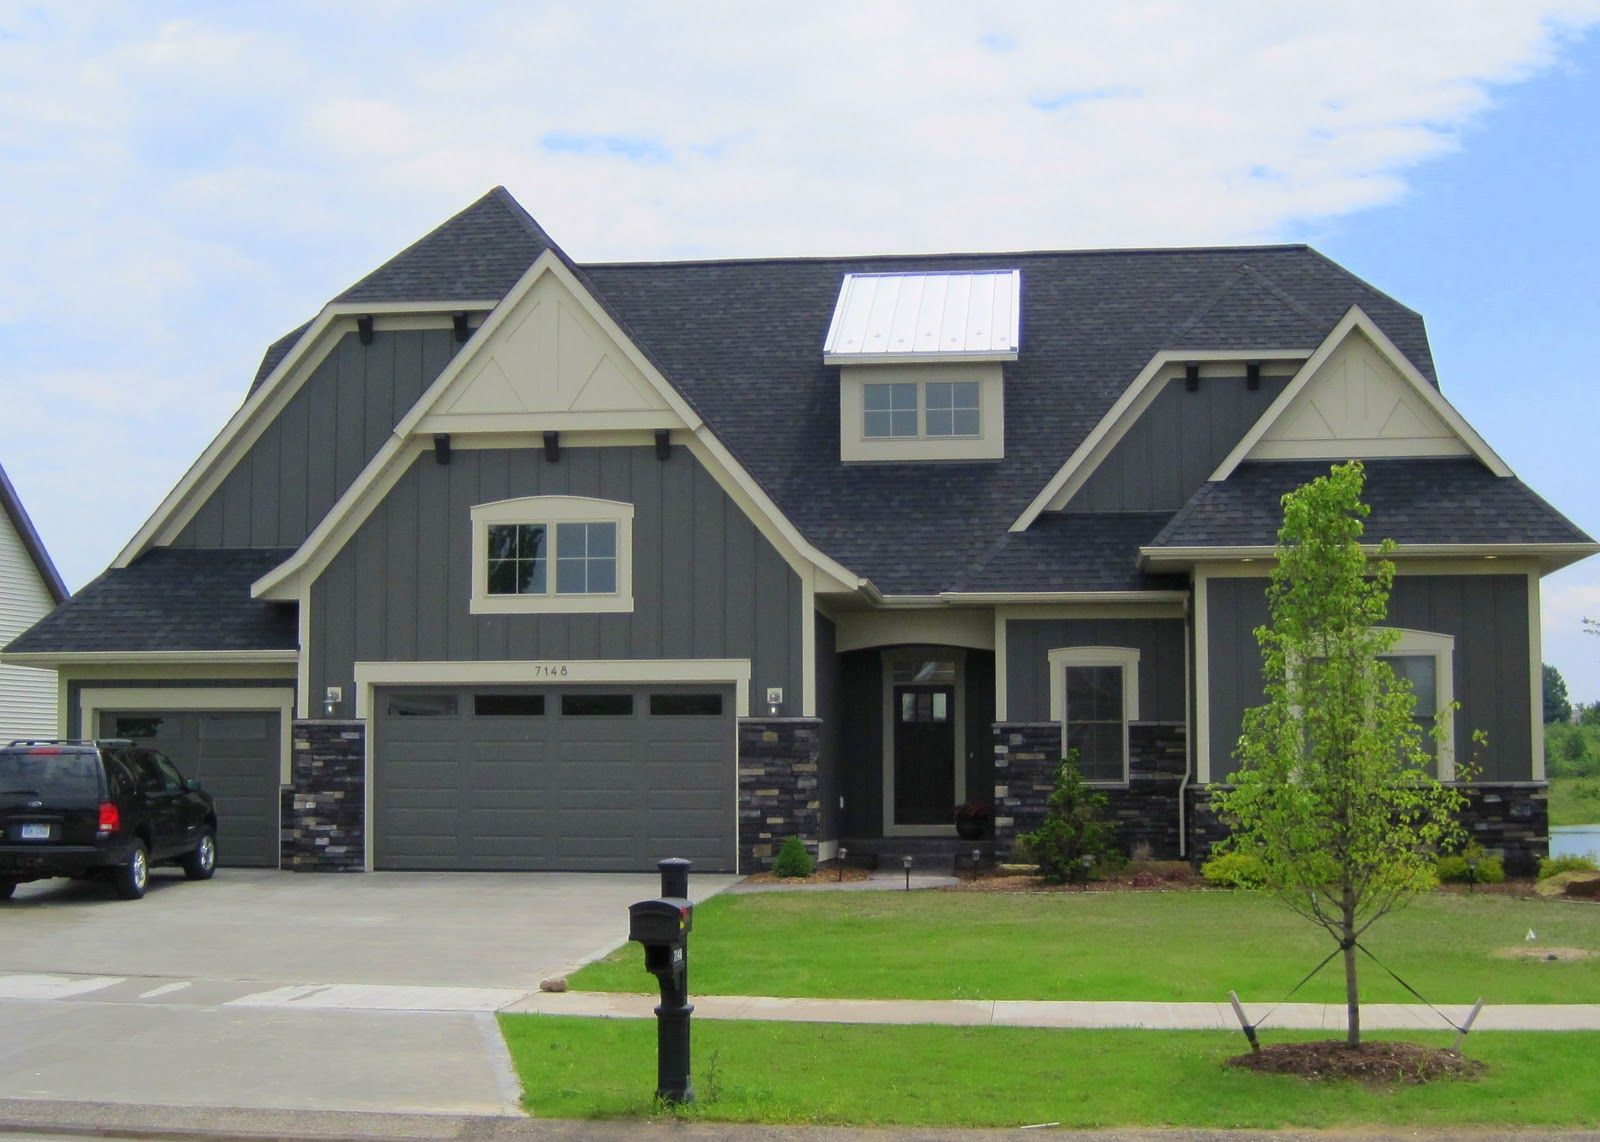 Craftsman exterior house paint ideas - Craftsman Homes On The Second Floor I Don T Know If Craftsmans Have Third Floor